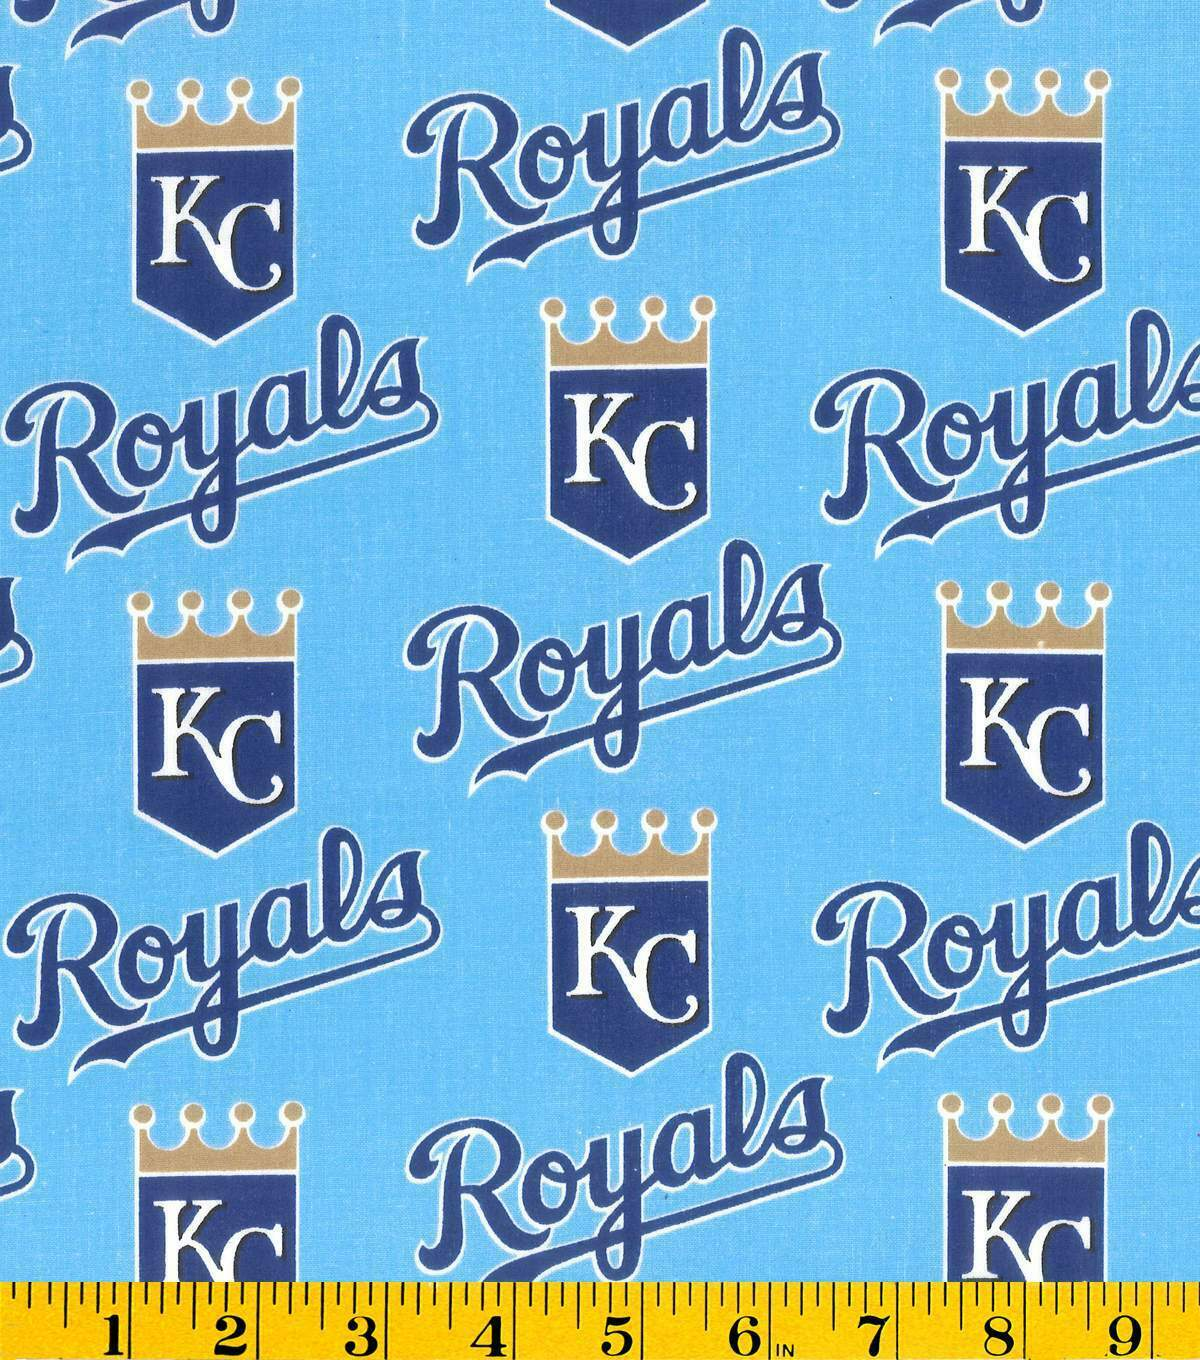 "Kansas City Royals Cotton FQ 1/4yd 18""x29"""